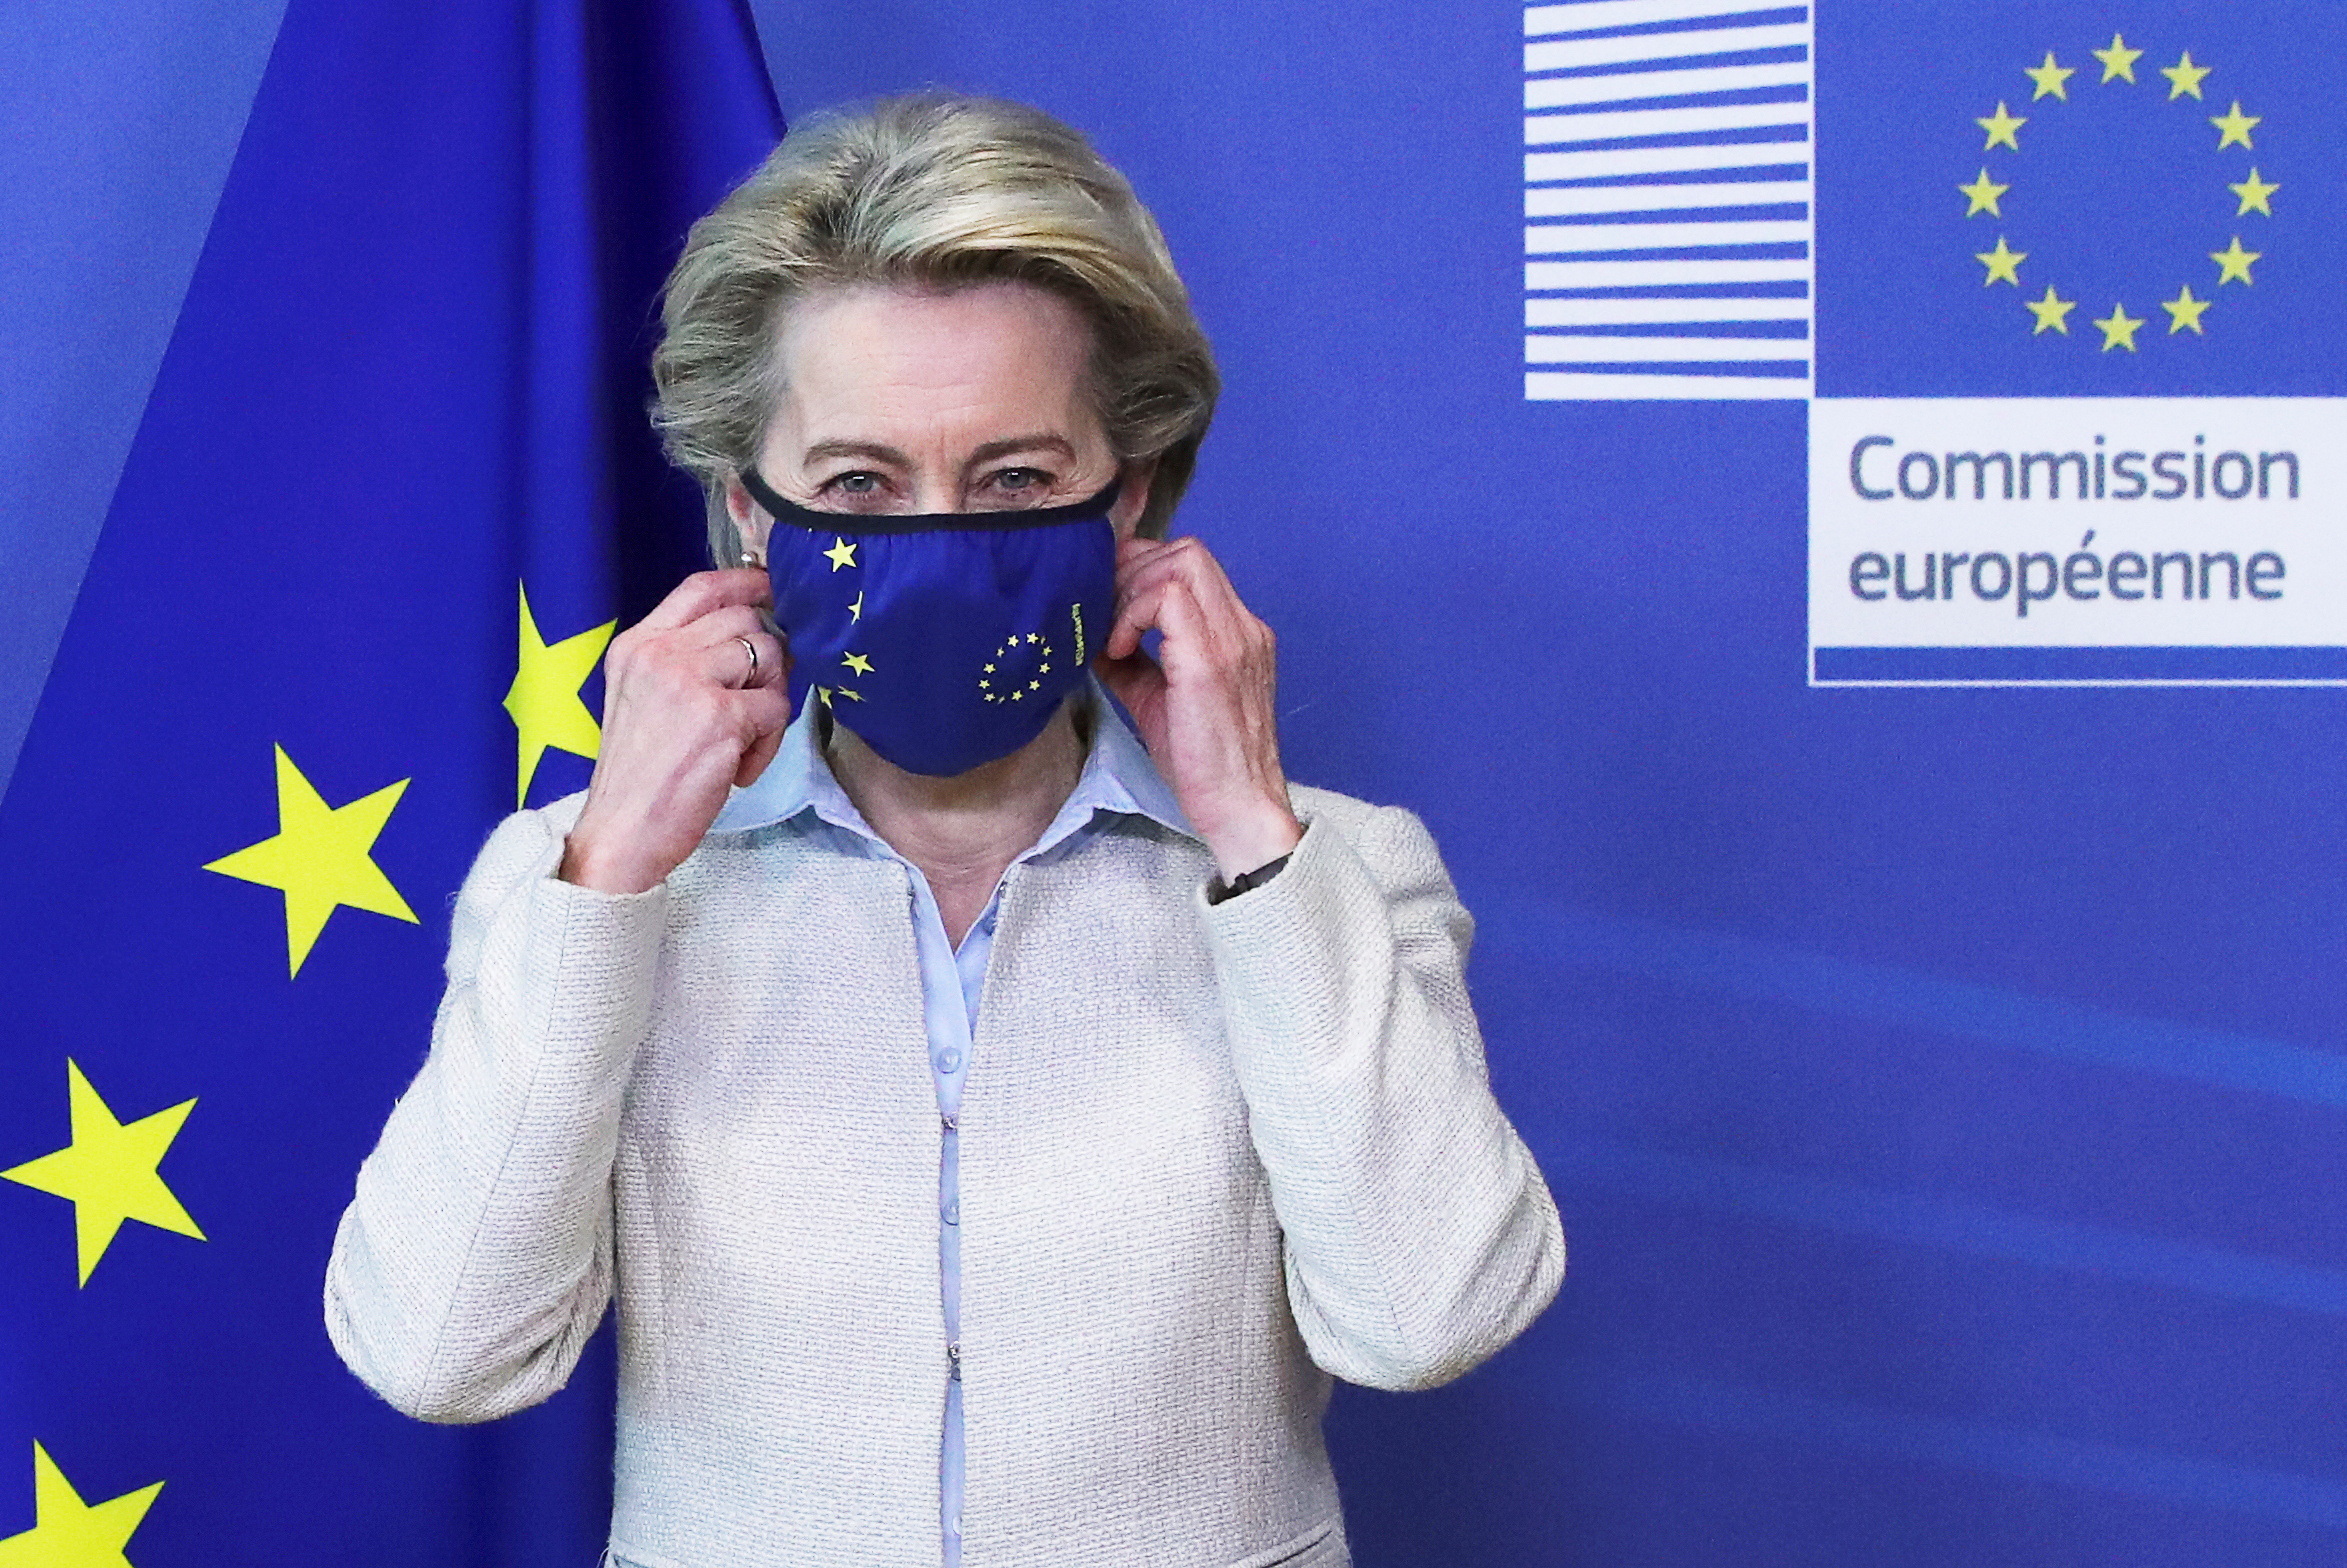 European Commission President Ursula von der Leyen removes her mask while meeting with Jordan's King Abdullah II ibn Al Hussein (not pictured) in Brussels, Belgium May 5, 2021. REUTERS/Yves Herman/Pool